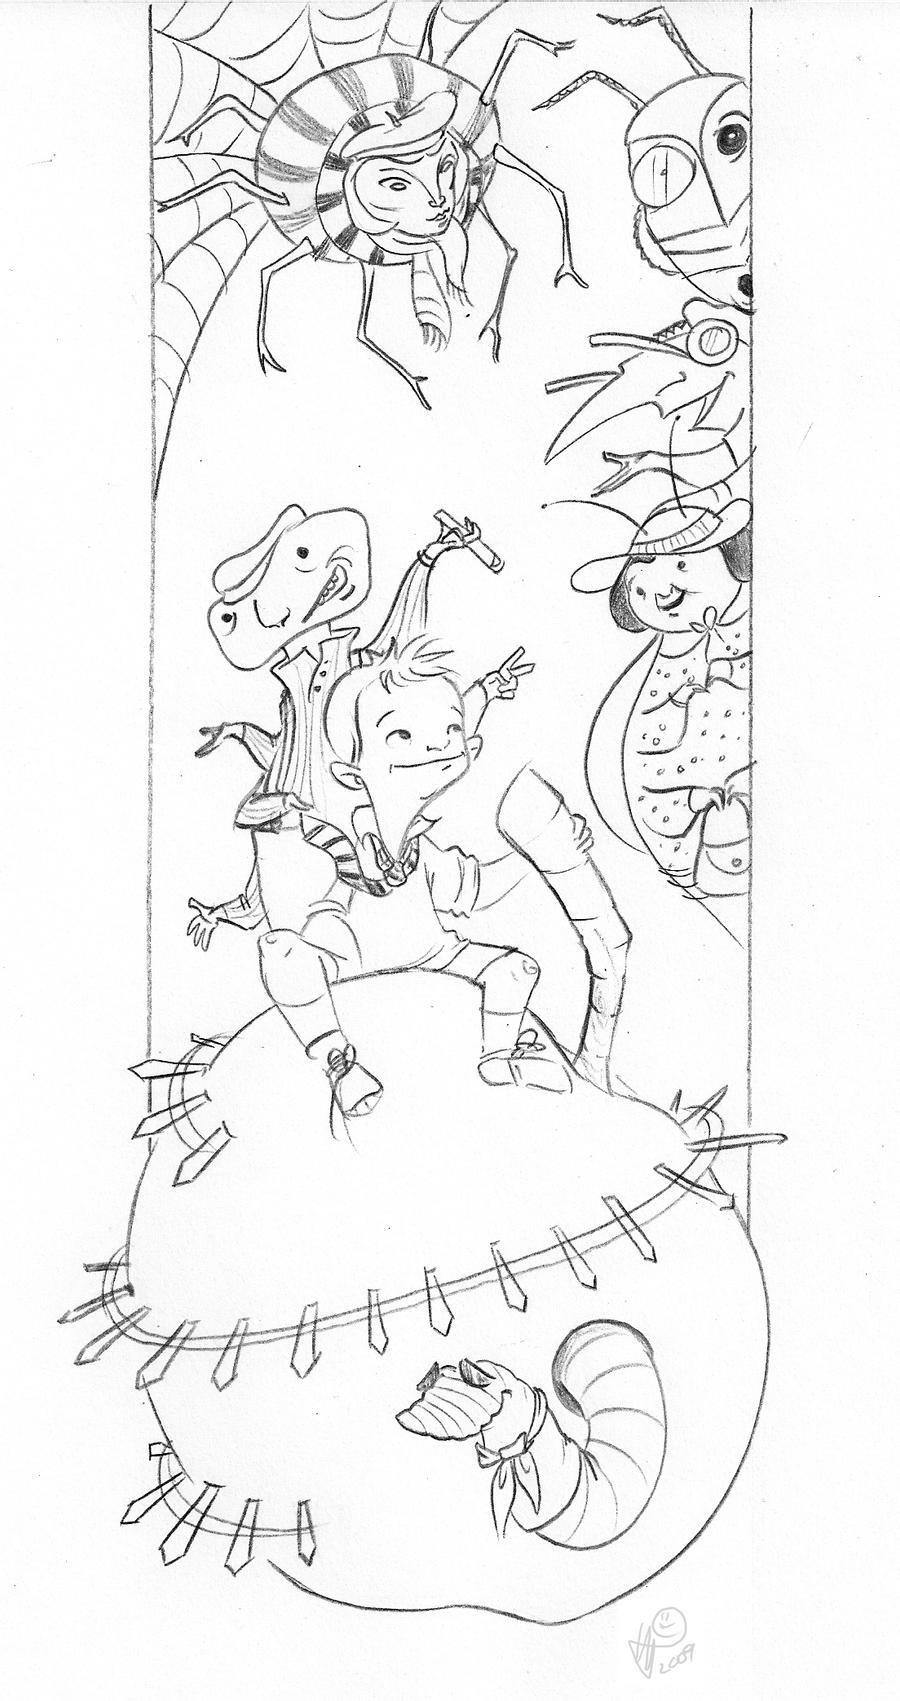 james and the giant peach coloring pages james and the giant peach coloring sheets coloring home coloring and james giant peach the pages